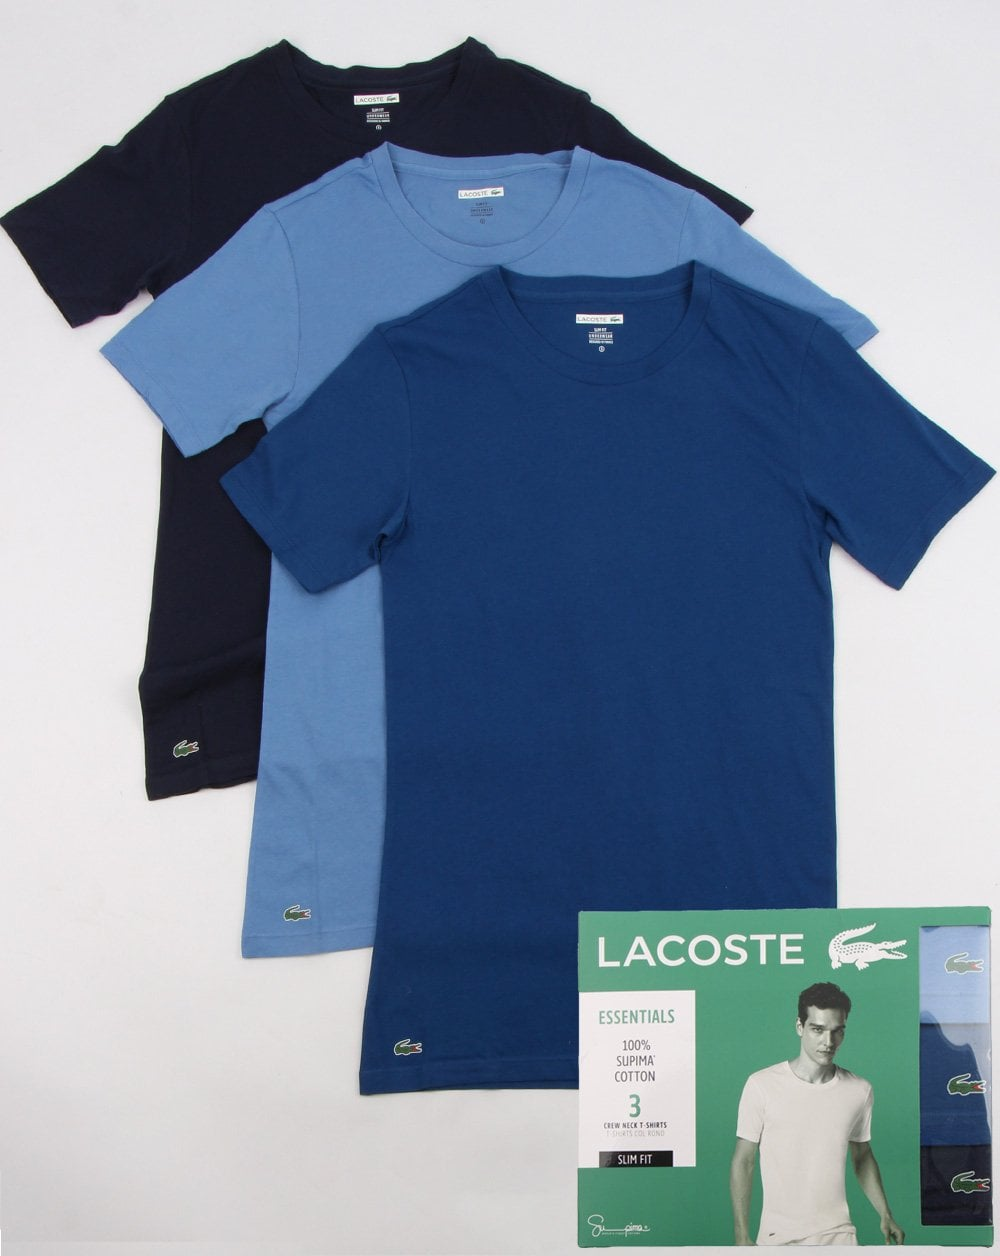 e342f28786ba Lacoste Triple Pack Slim Fit Crew Tees Navy/blue, Mens, Tee,Collection